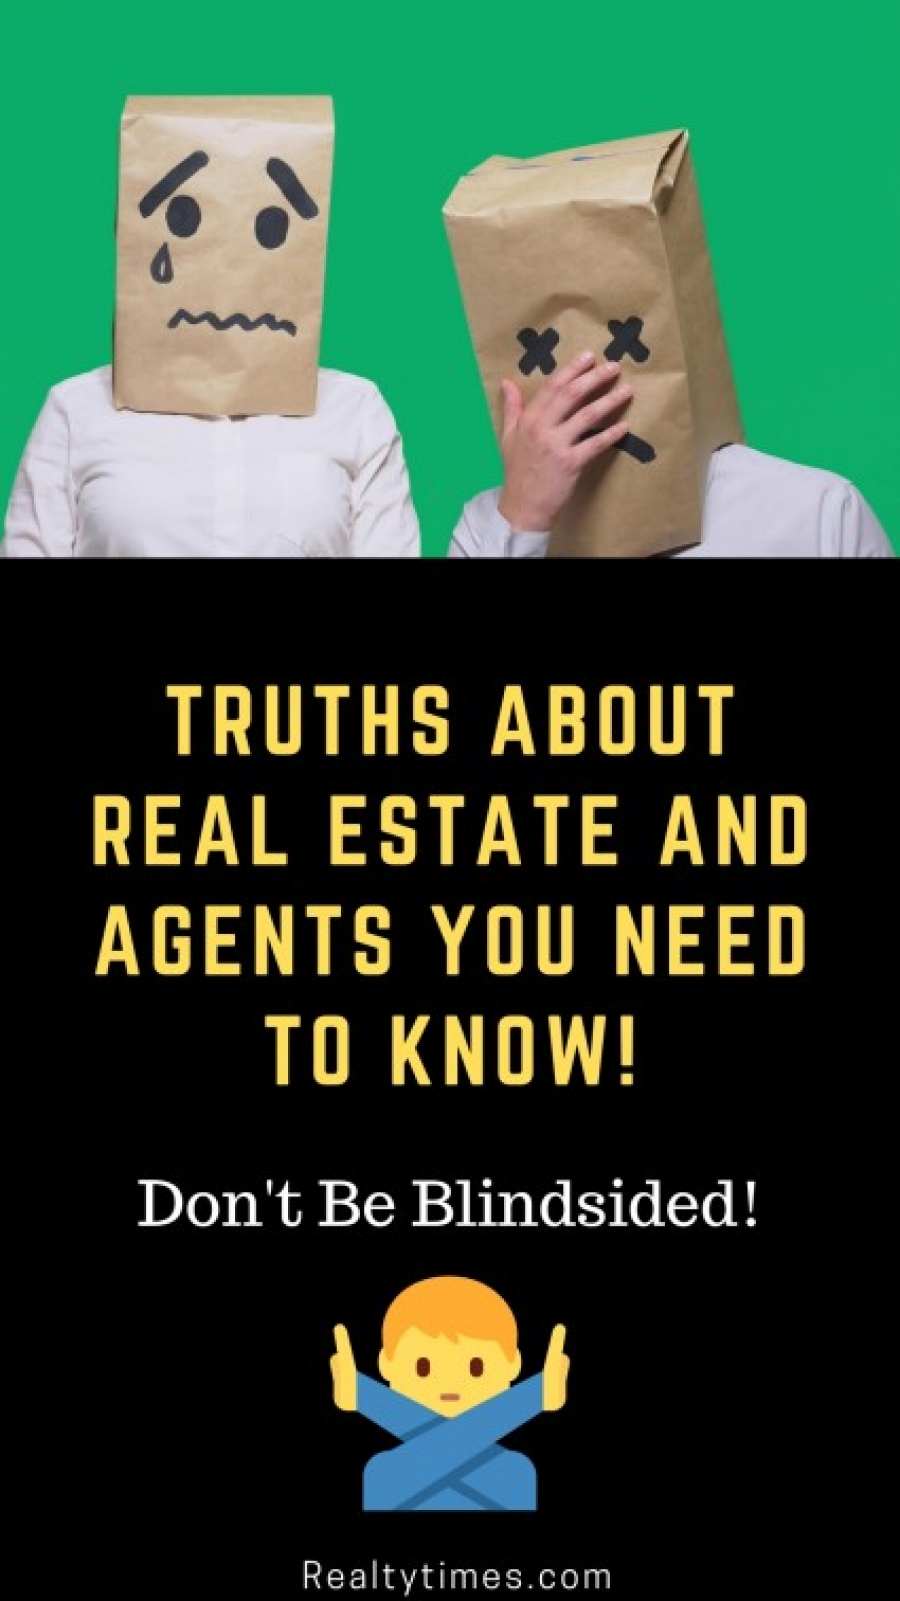 Truths About Real Estate and Agents You Should Know